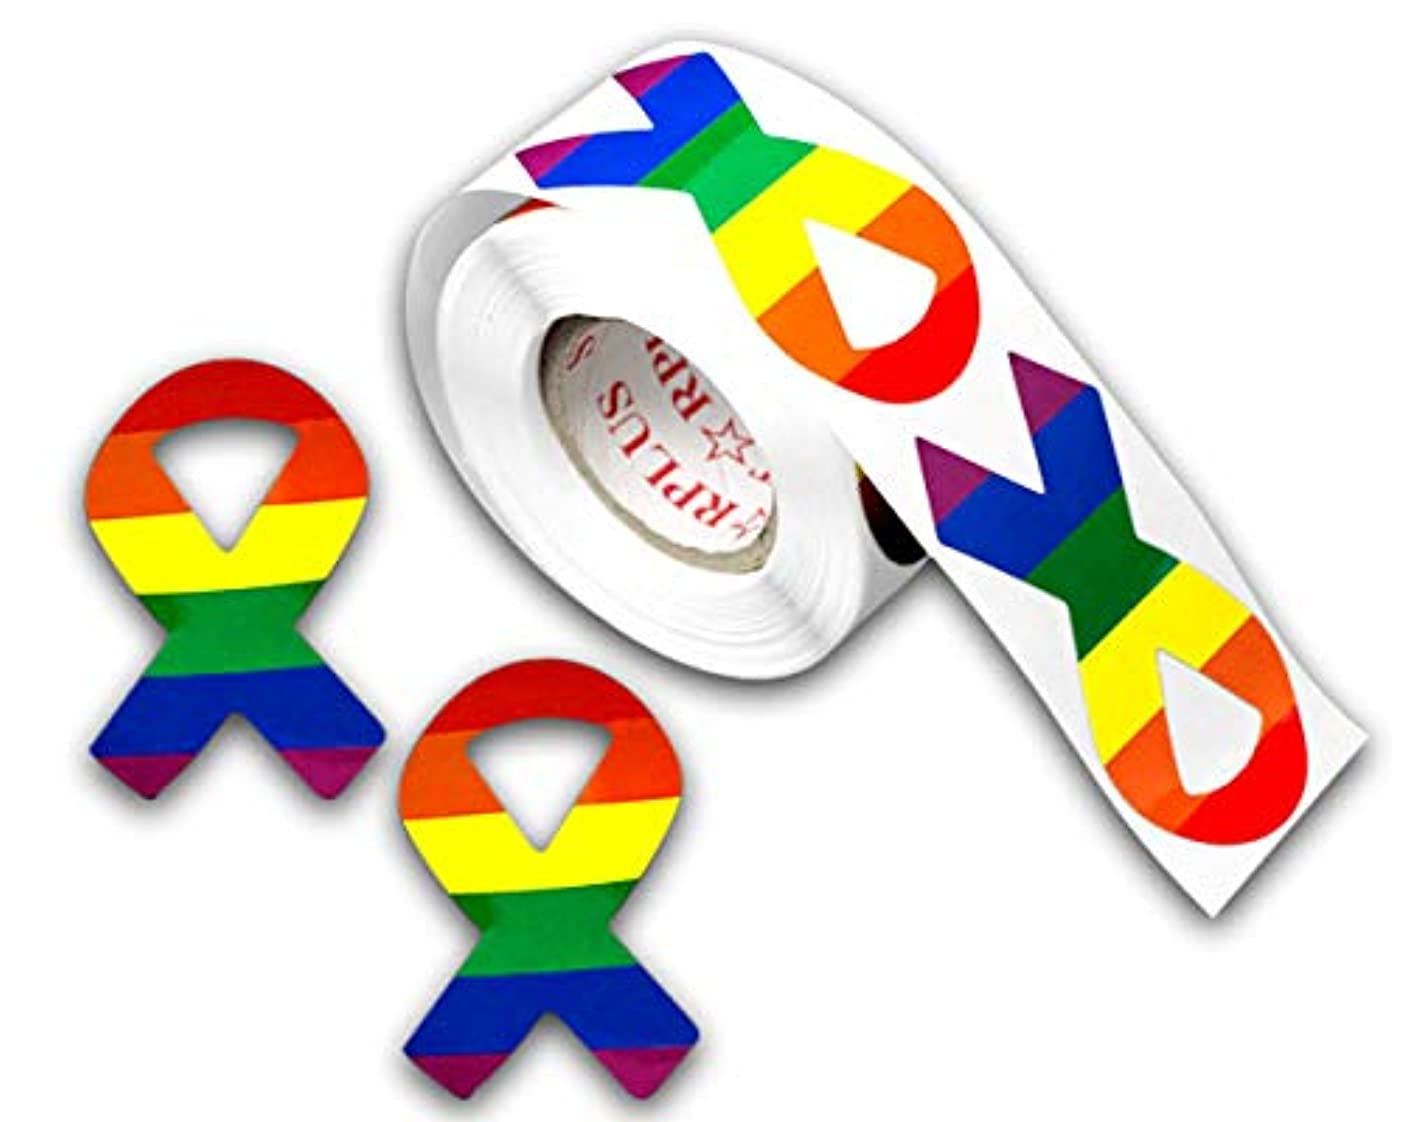 250 Gay Pride Rainbow Ribobn Shaped Stickers on a Roll - Ribbon Shaped (250 Stickers) - Support The LGBT Cause